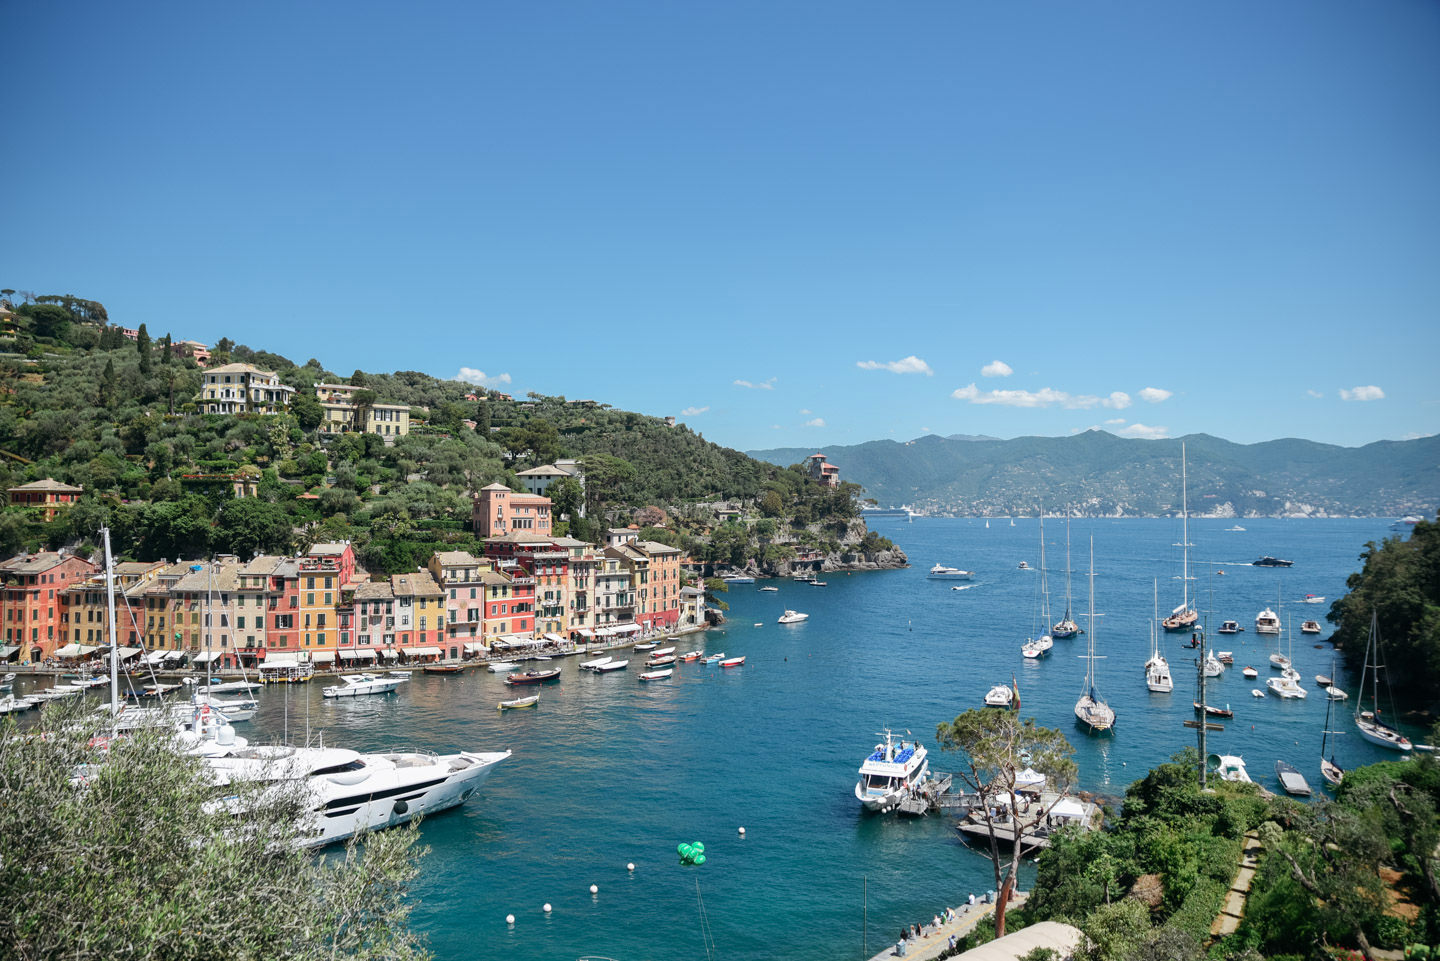 Blog-Mode-And-The-City-Lifestyle-Italie-Portofino-Belmond-Hotel-11